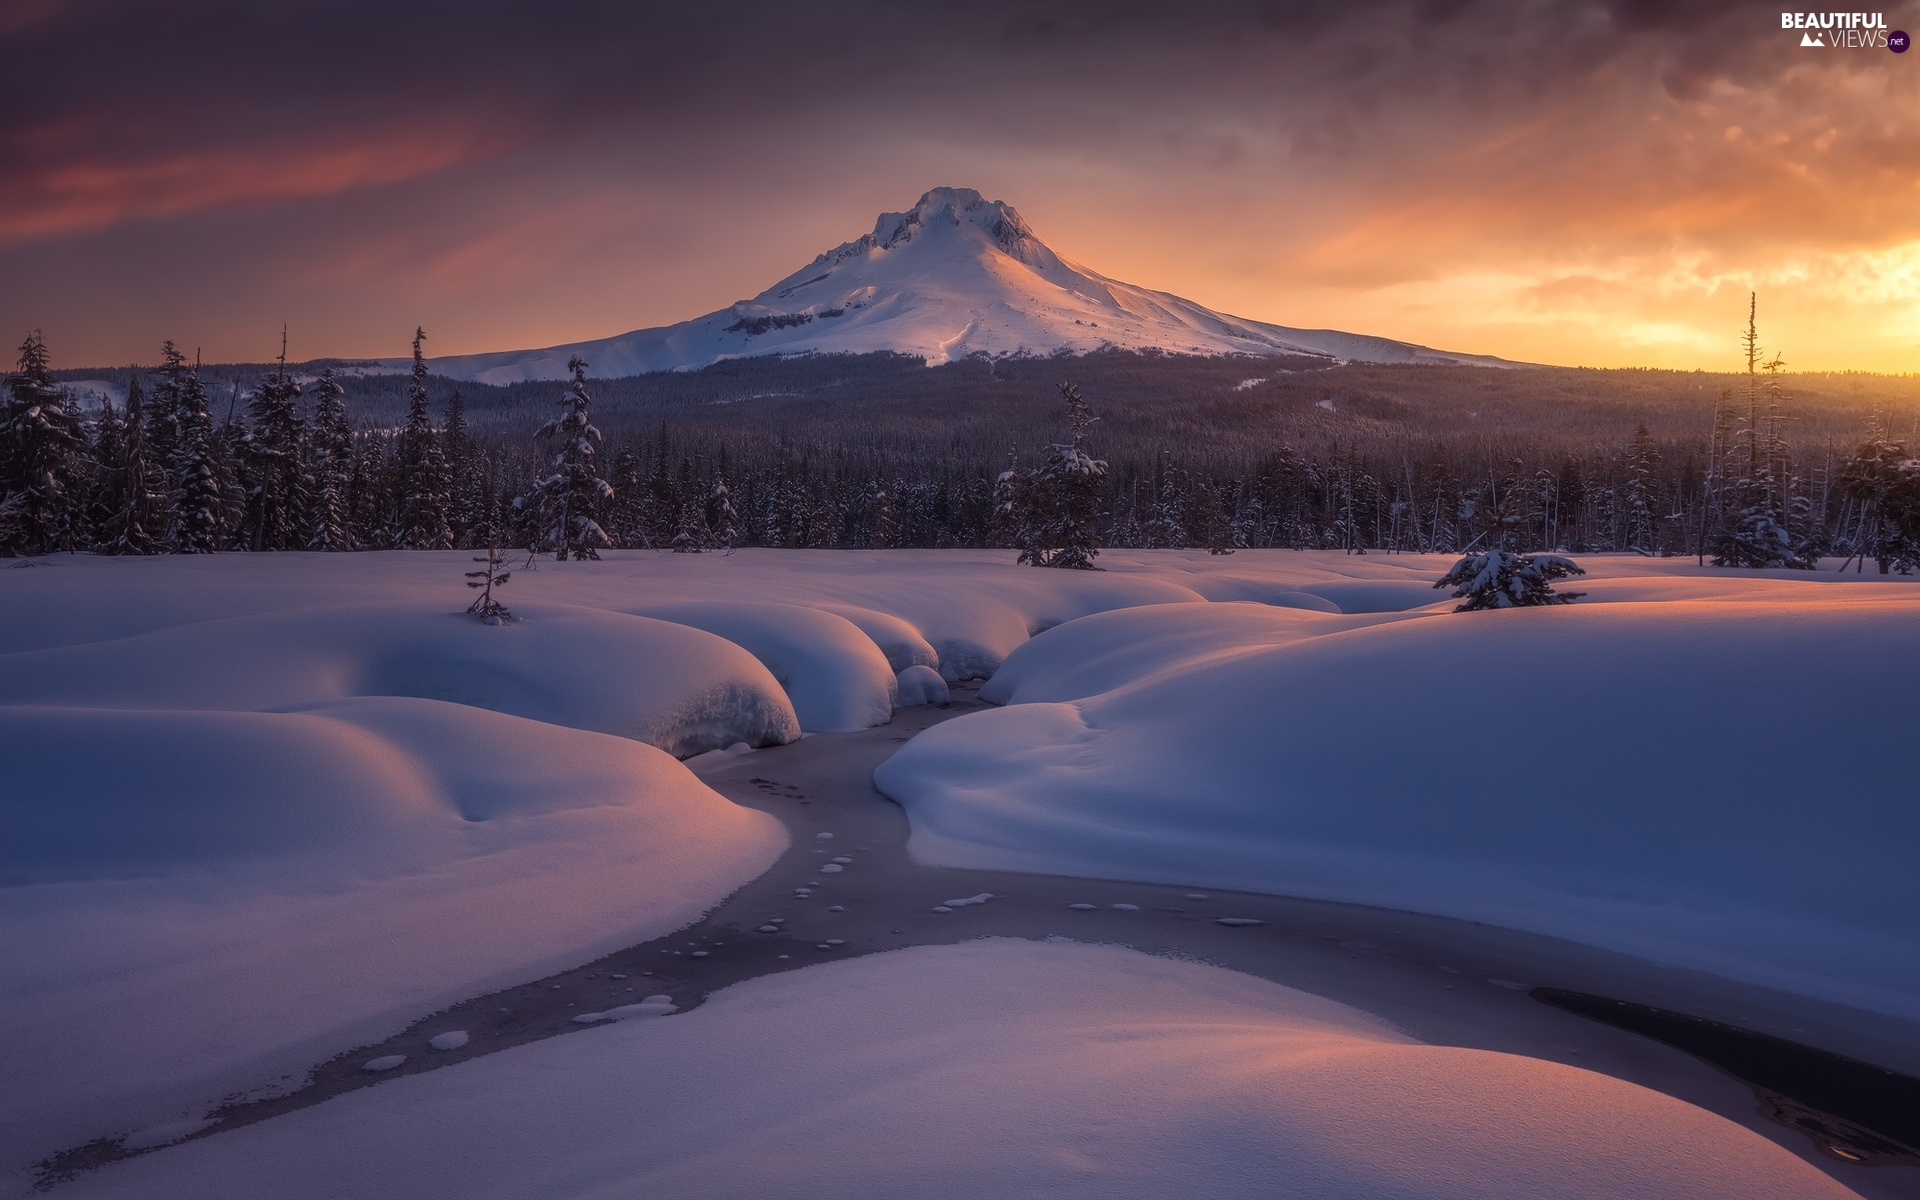 viewes, trees, River, Mount Hood, Stratovolcano, State of Oregon, Snowy, Sunrise, The United States, forest, mountains, winter